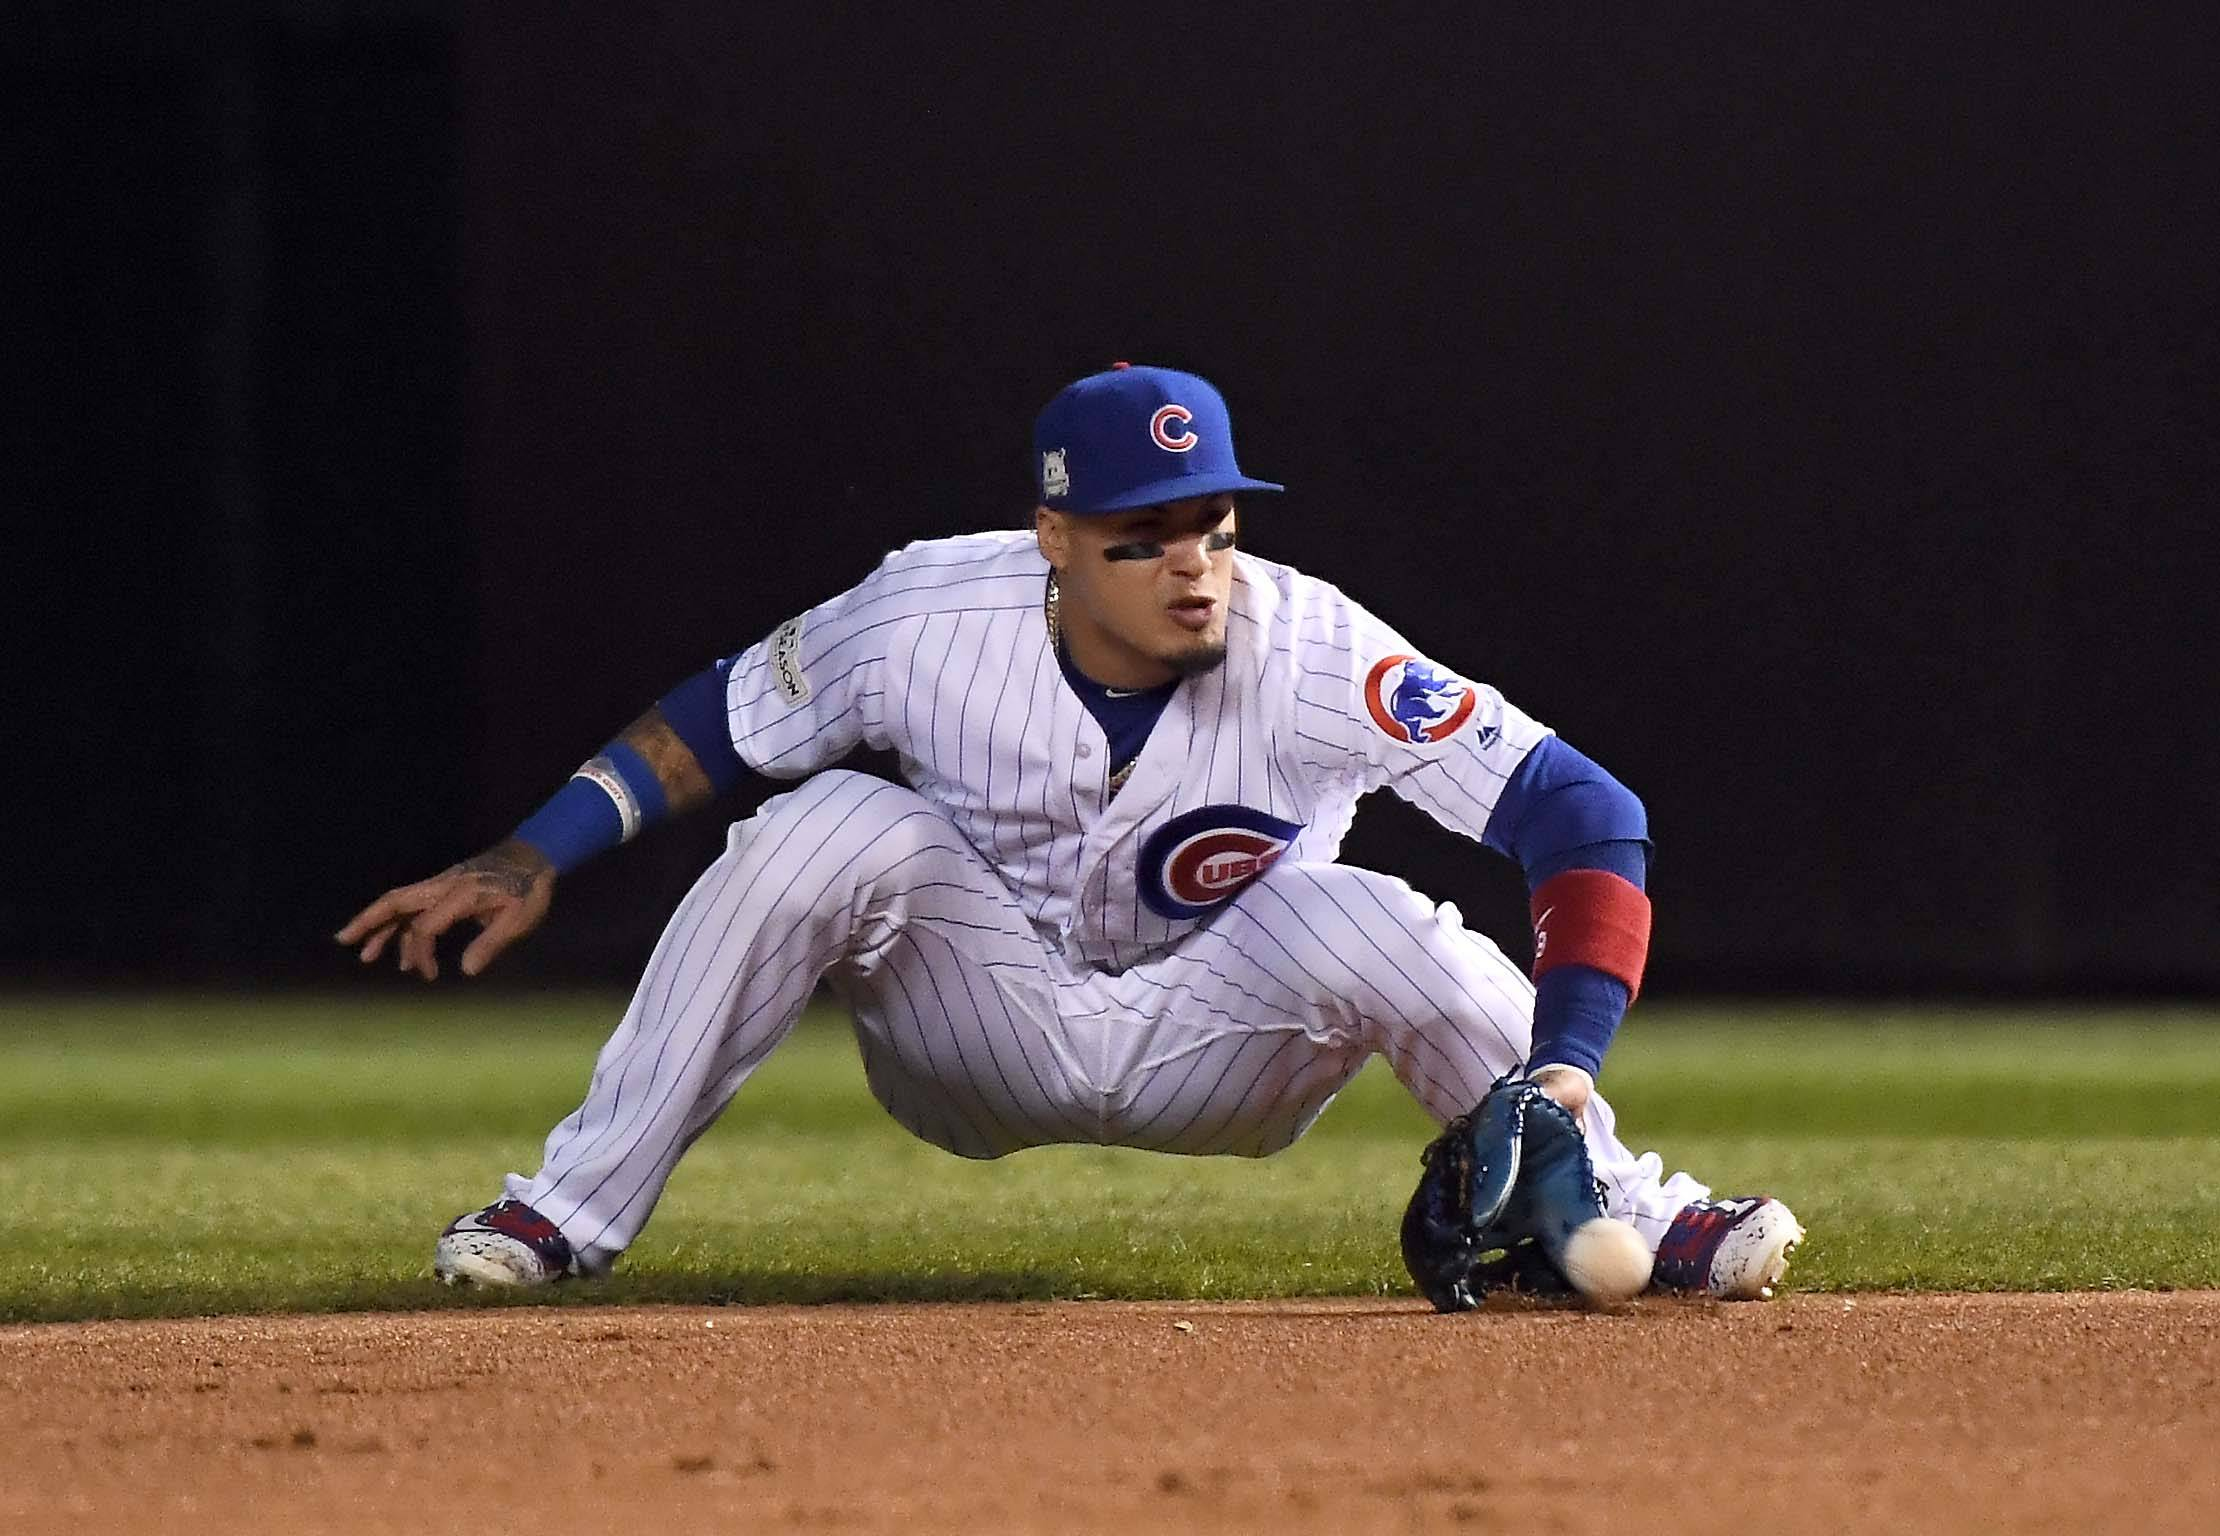 Chicago Cubs second baseman Javier Baez (9) grabs a line drive by Los Angeles Dodgers right fielder Andre Ethier (16) to end the 3rd inning during Game 4 of the National League championship series, Oct, 18 2017, at Wrigley Field in Chicago.